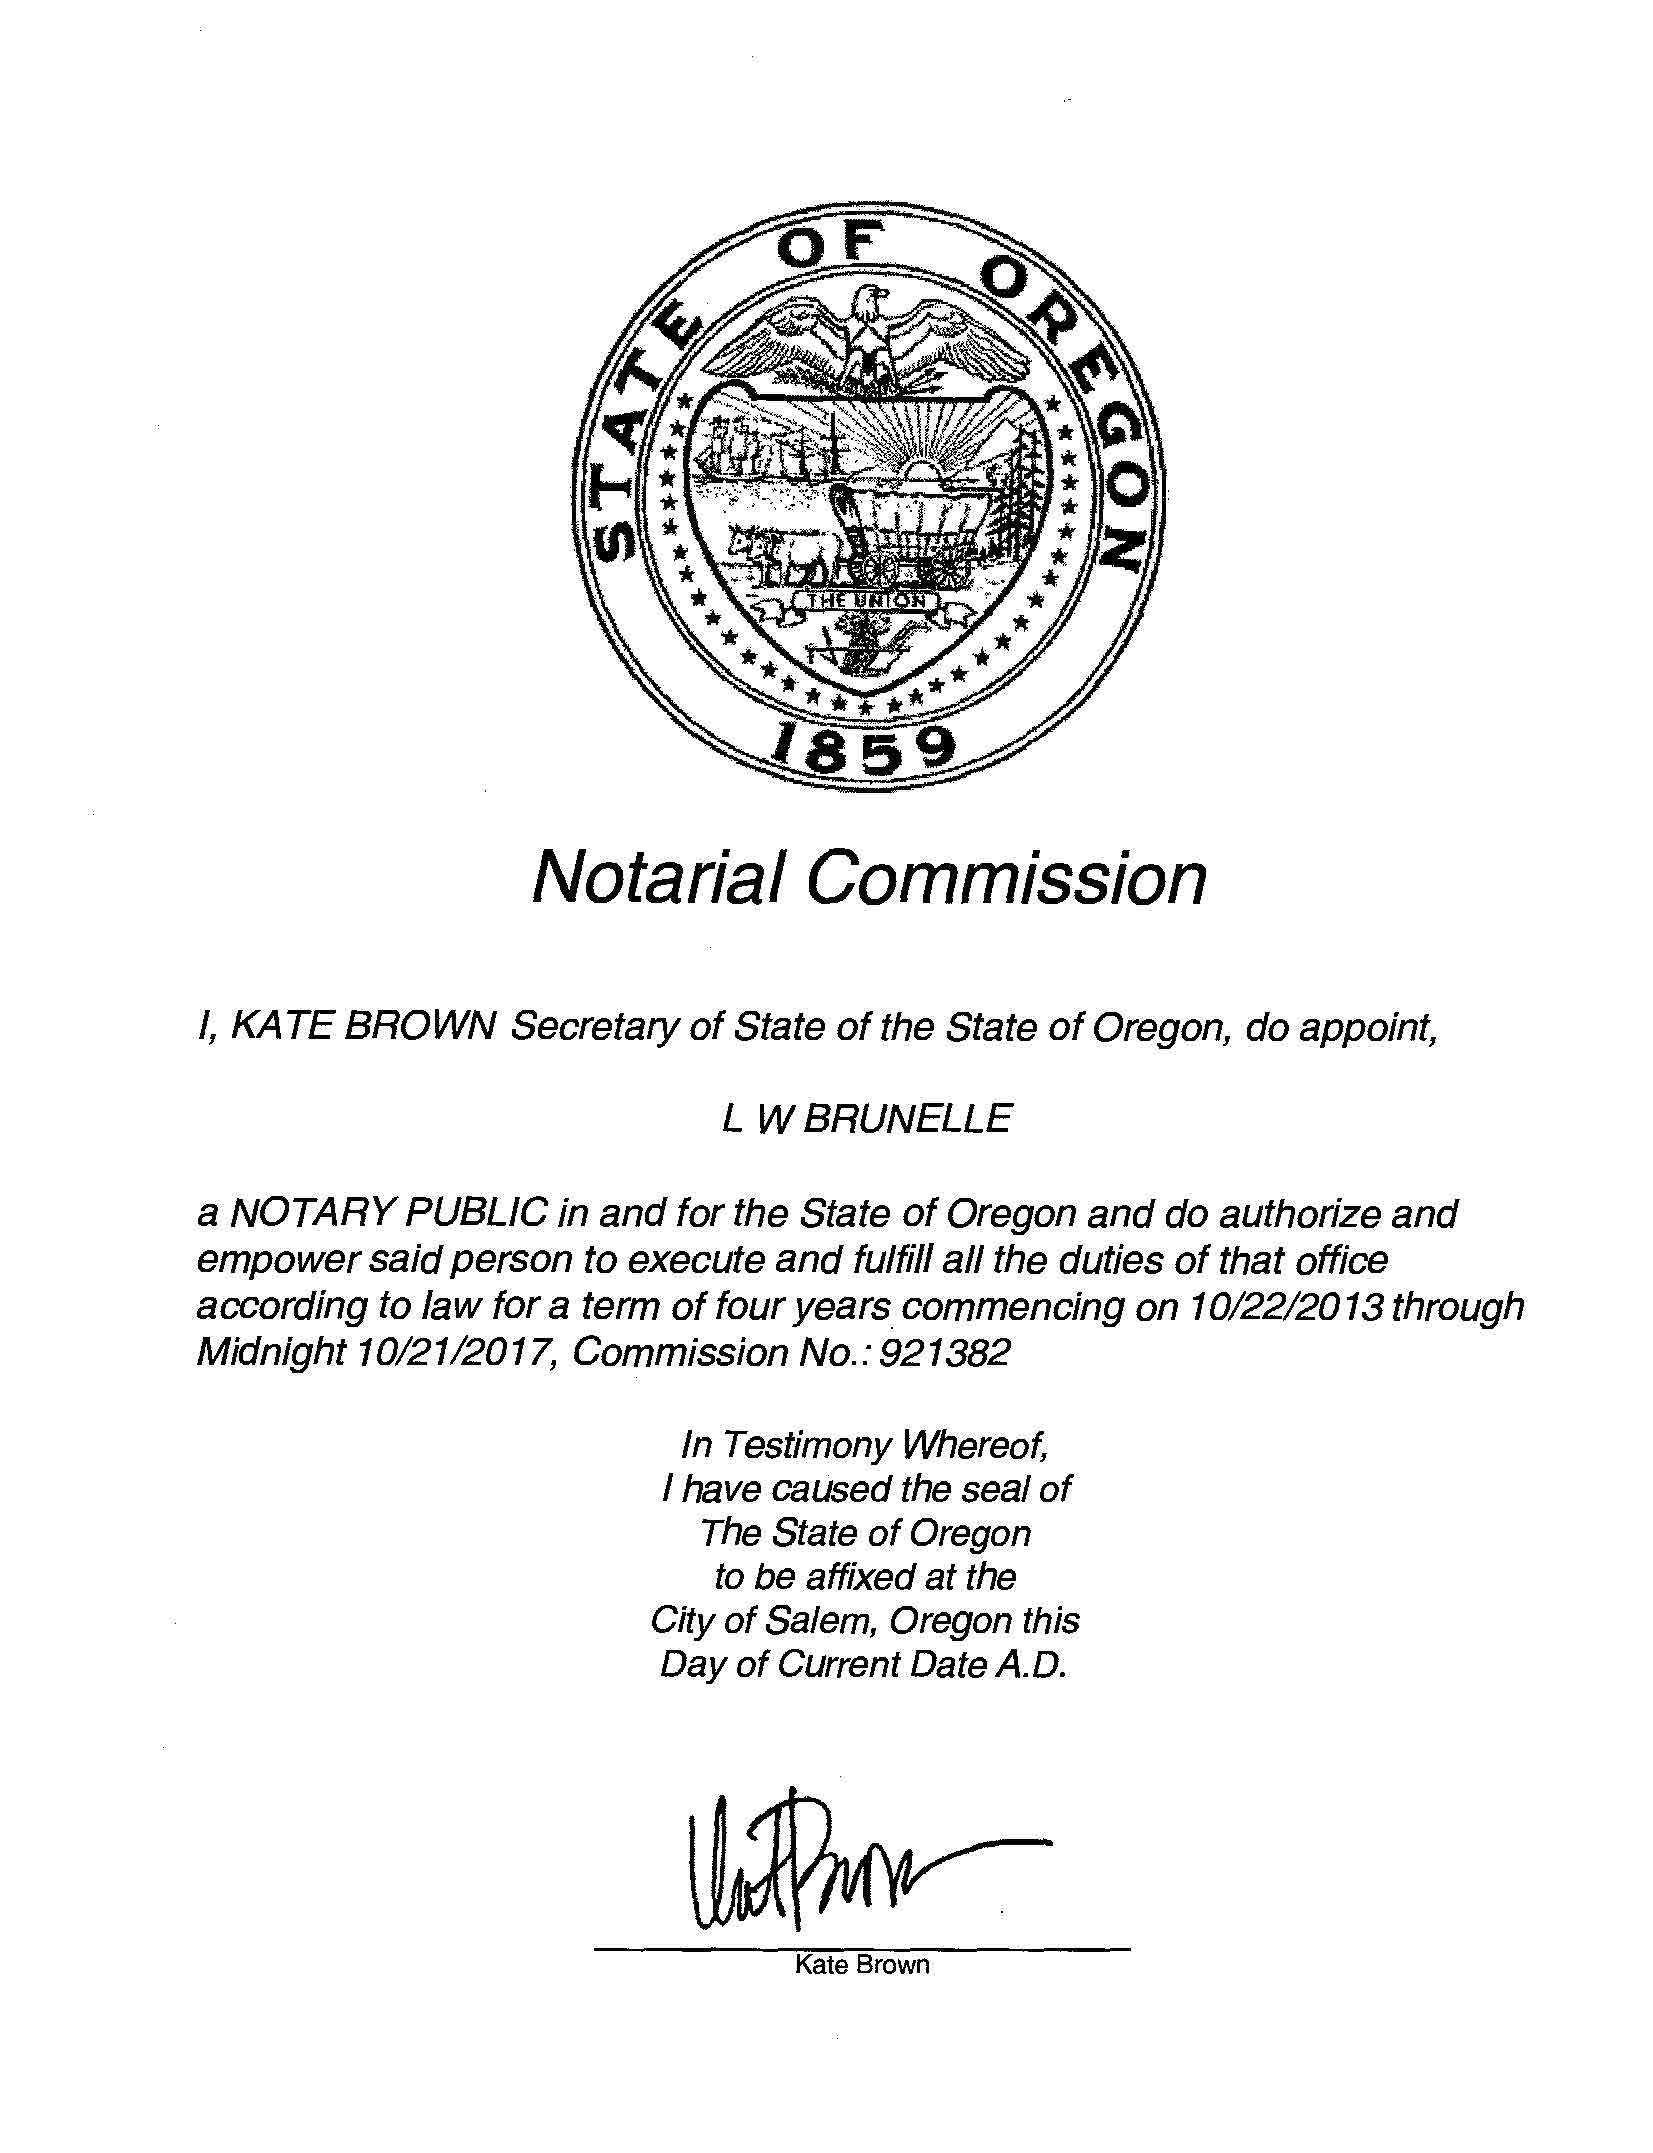 Lw Brunelle Enterprises Mobile Notary Services Interested In How To Become